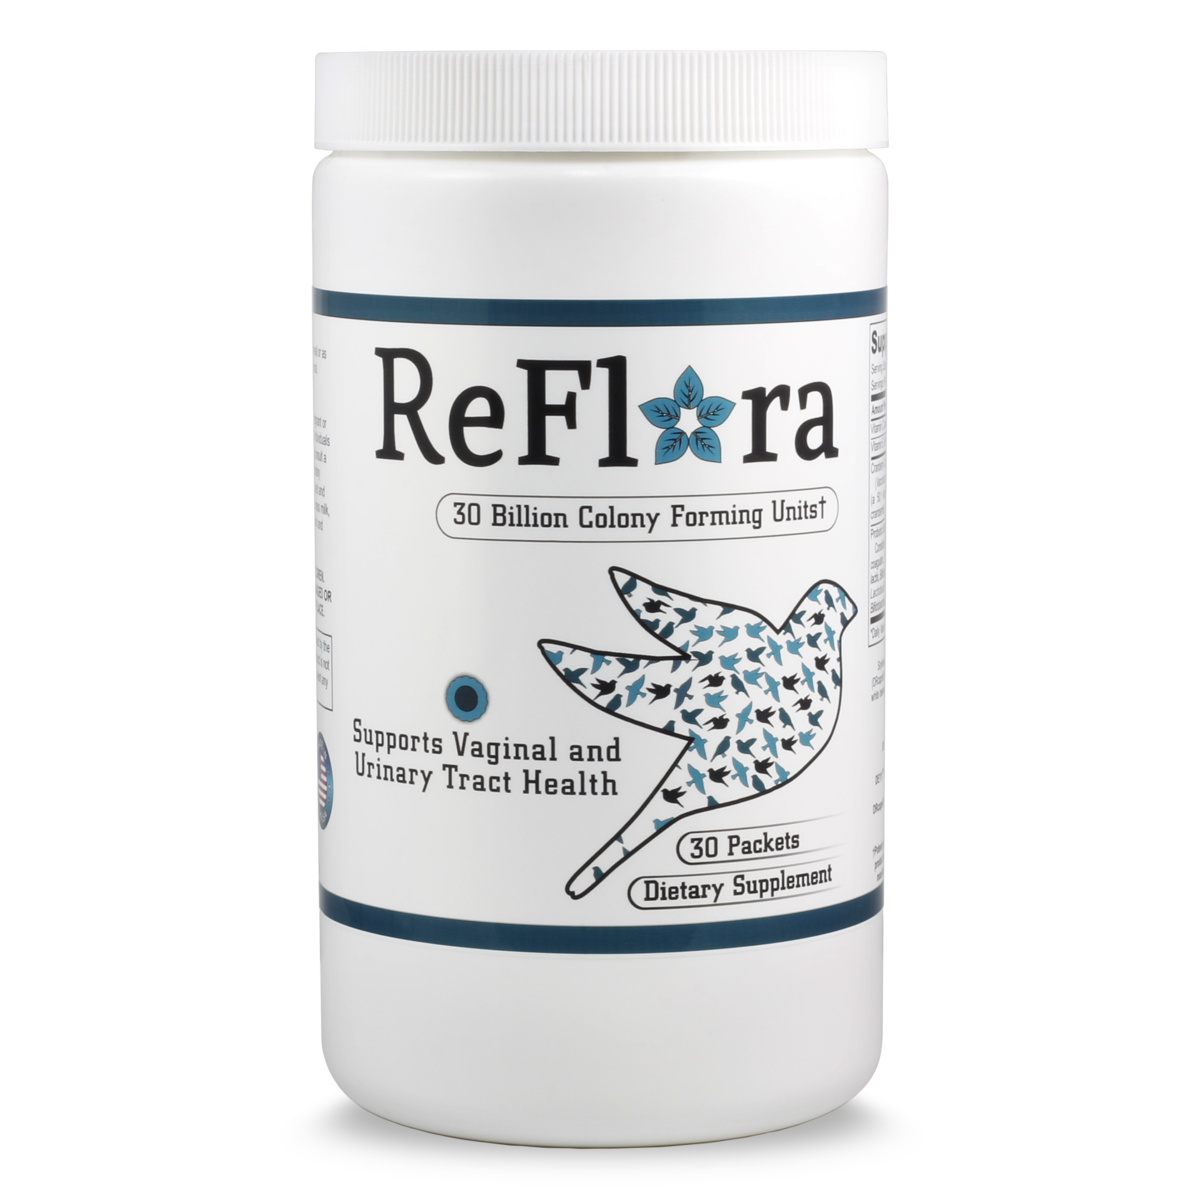 Reflora probiotic and cranberry for vaginal and urinary tract health